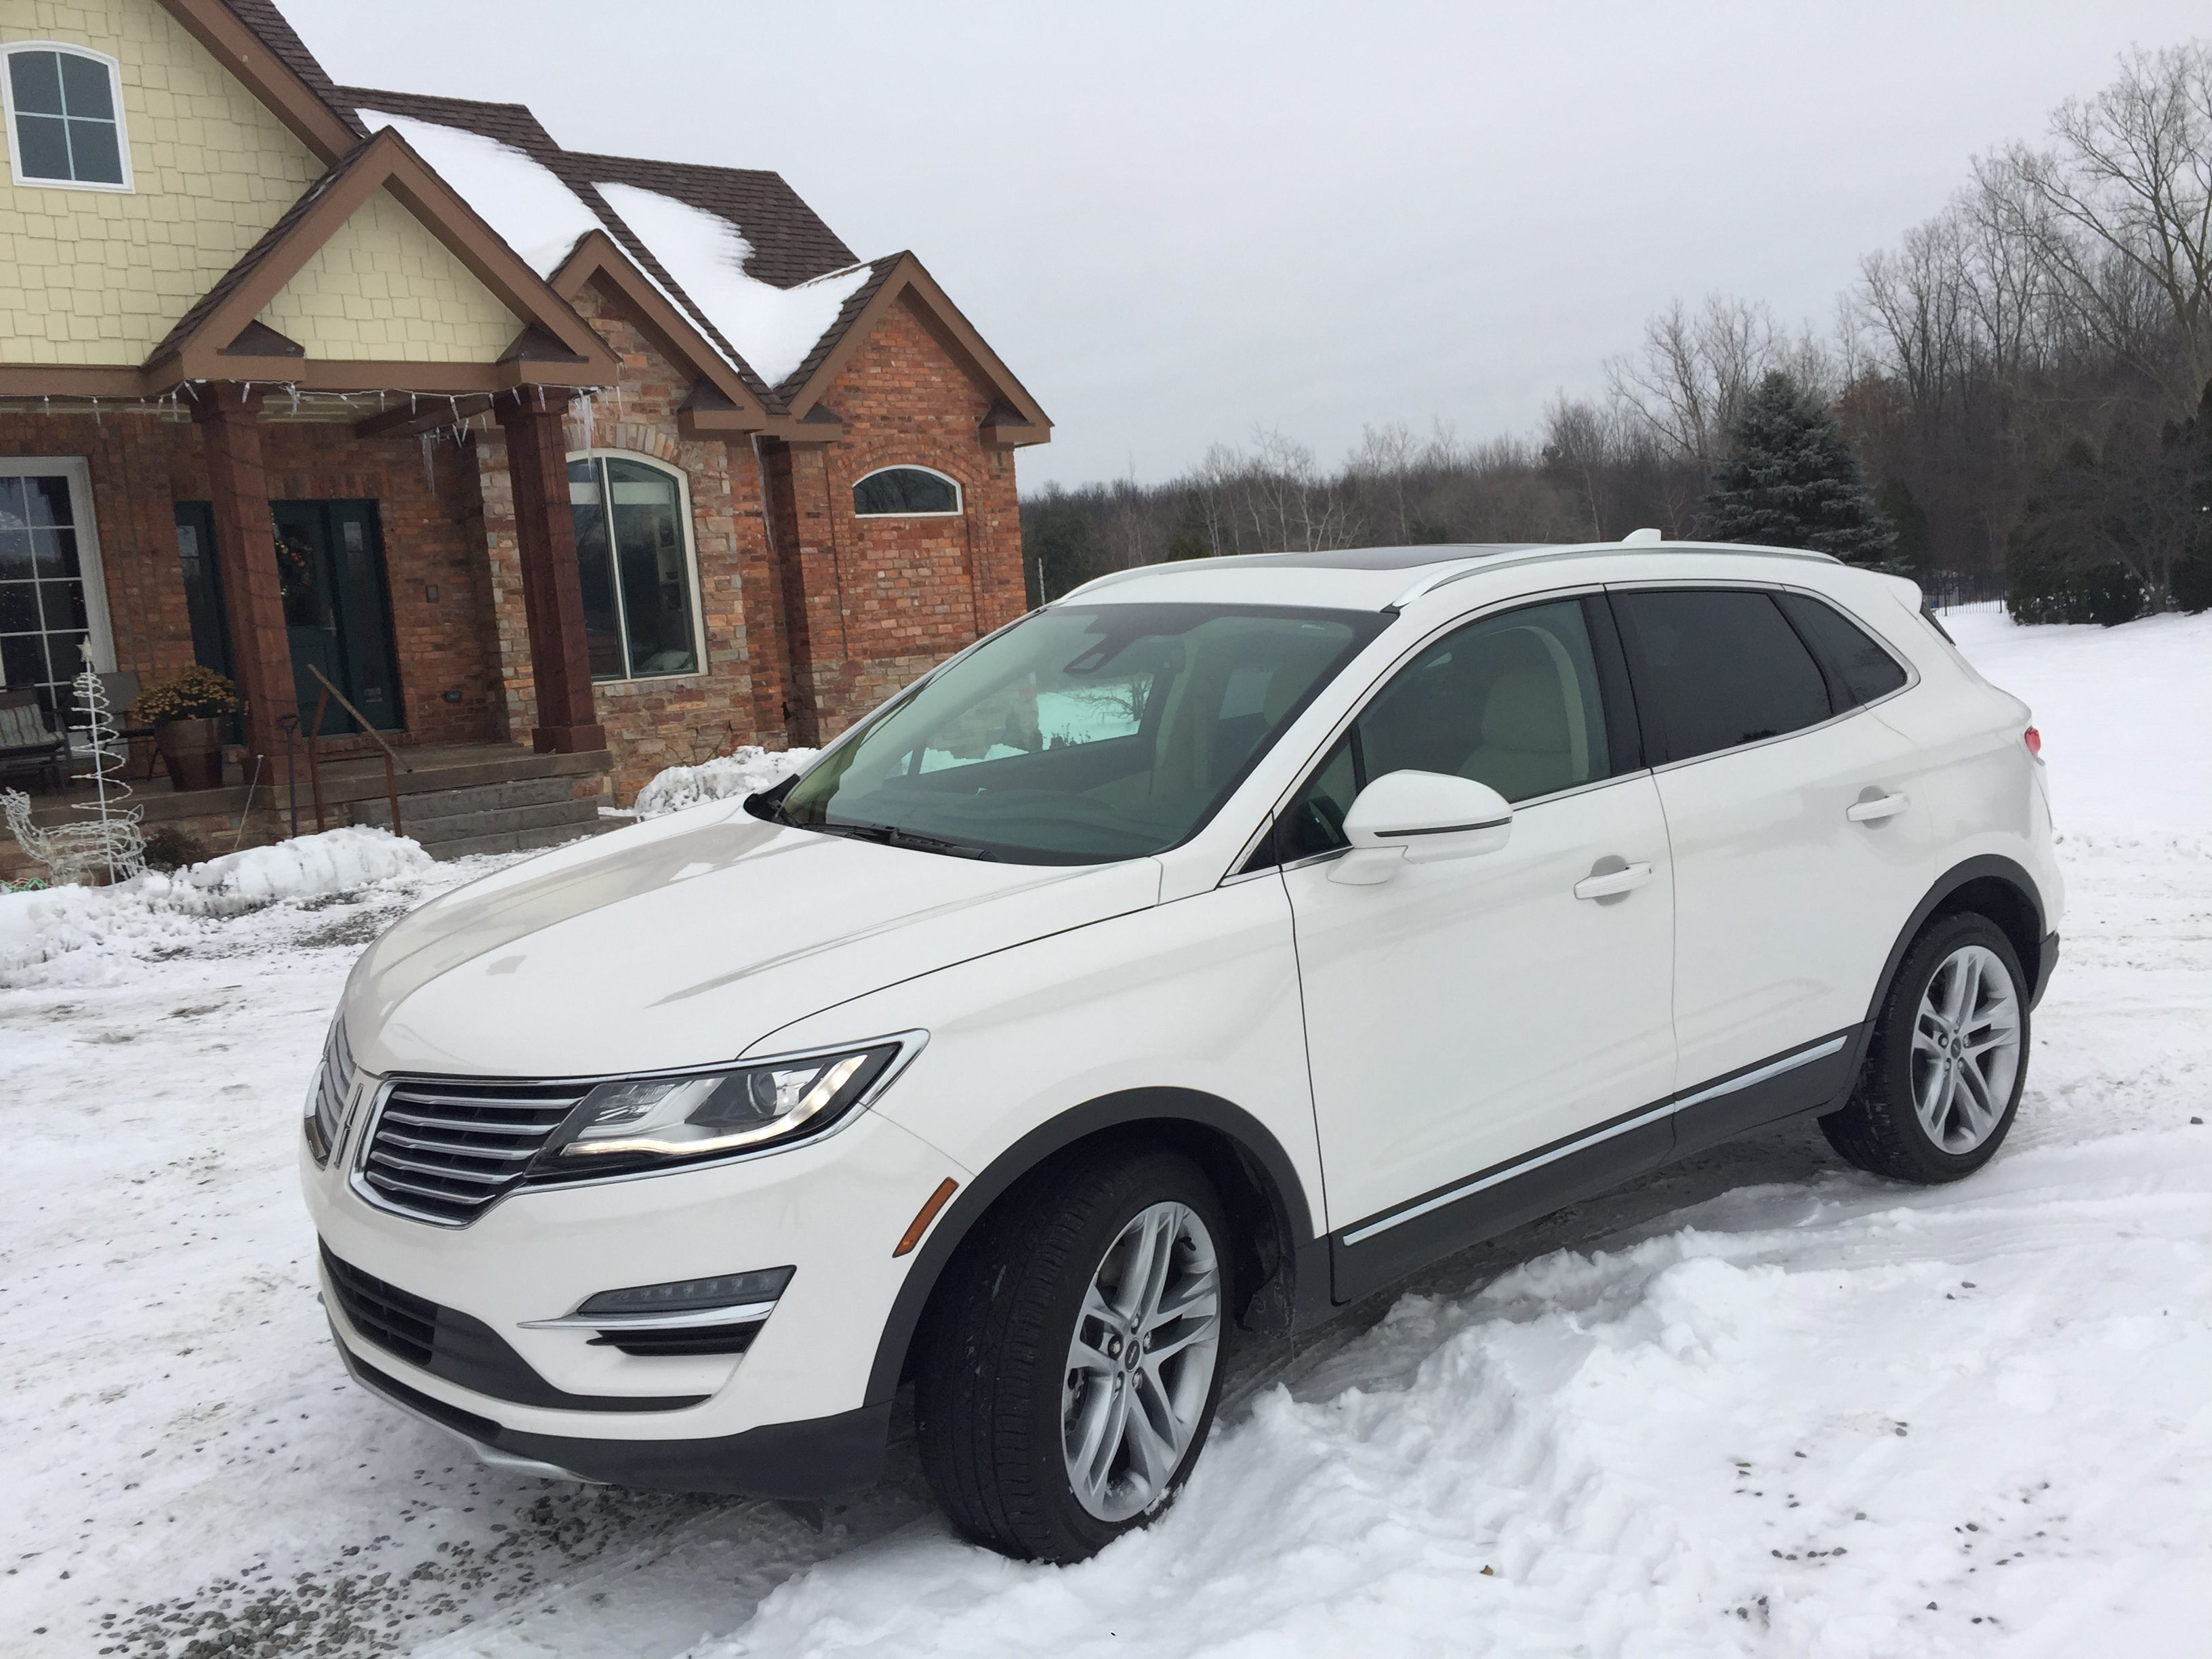 lincoln cars for img reserve in auto sale mkx awd listing used buds